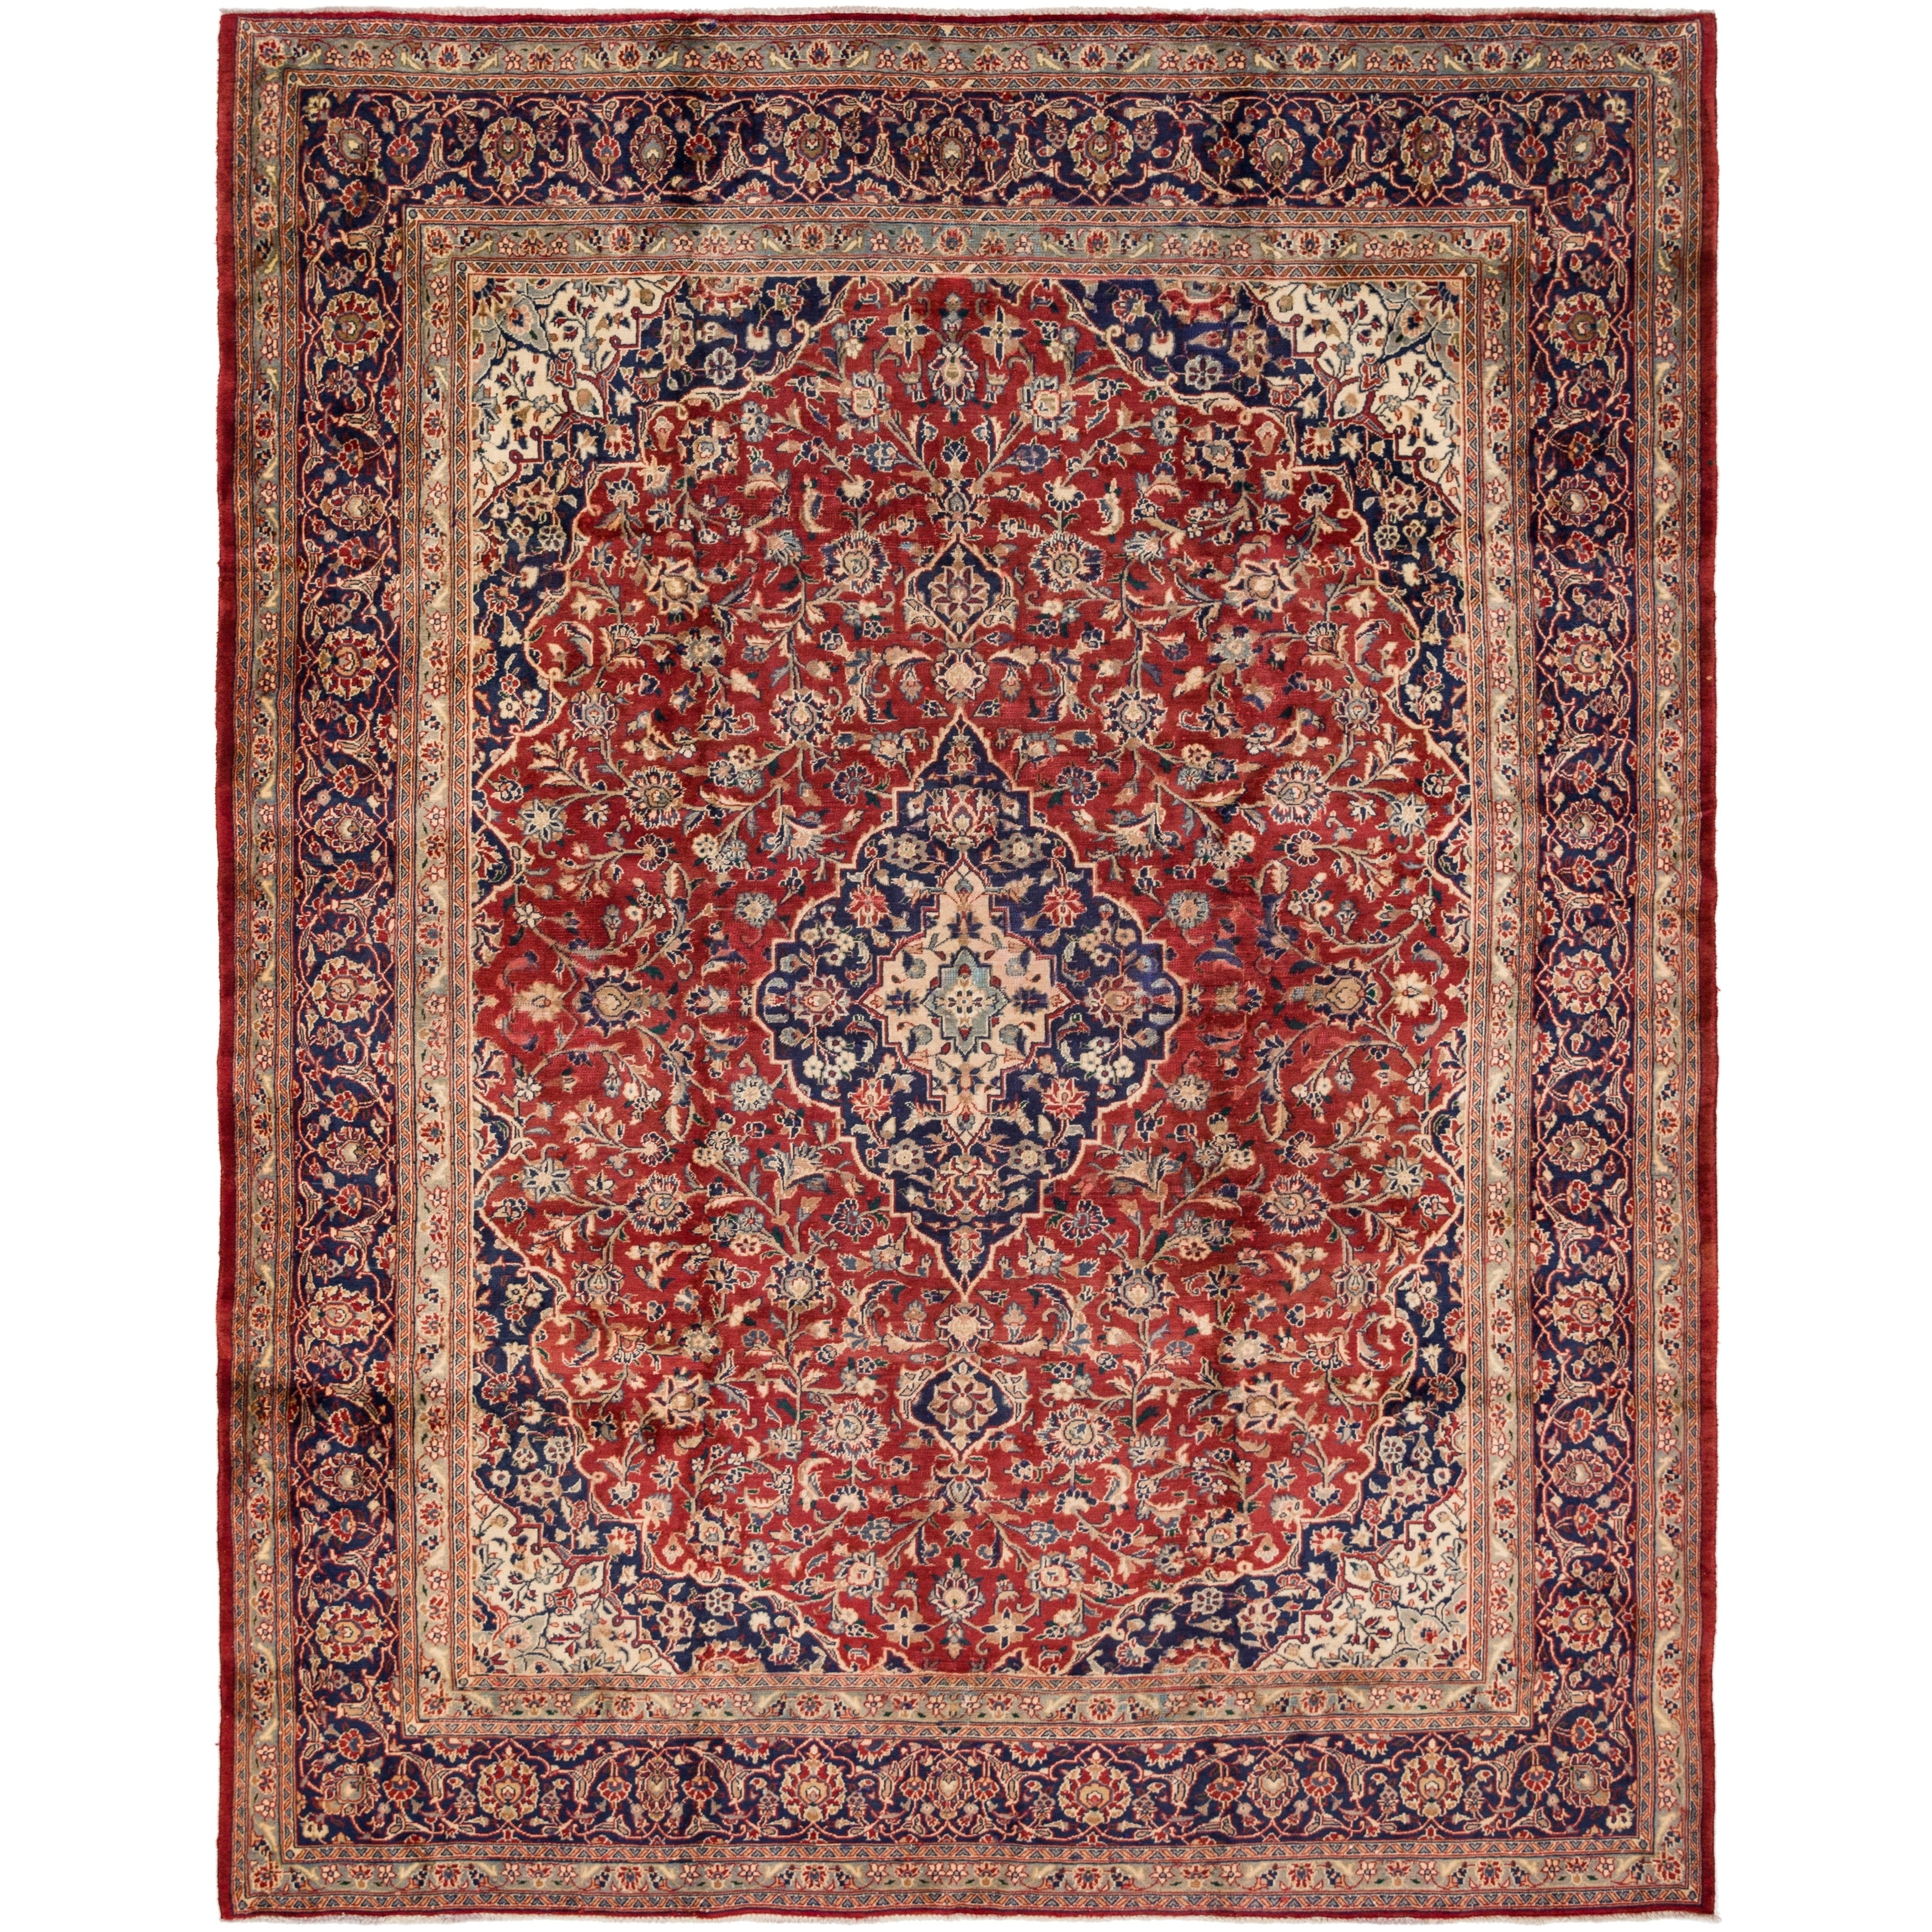 Hand Knotted Kashan Antique Wool Area Rug - 9 5 x 12 (Red - 9 5 x 12)